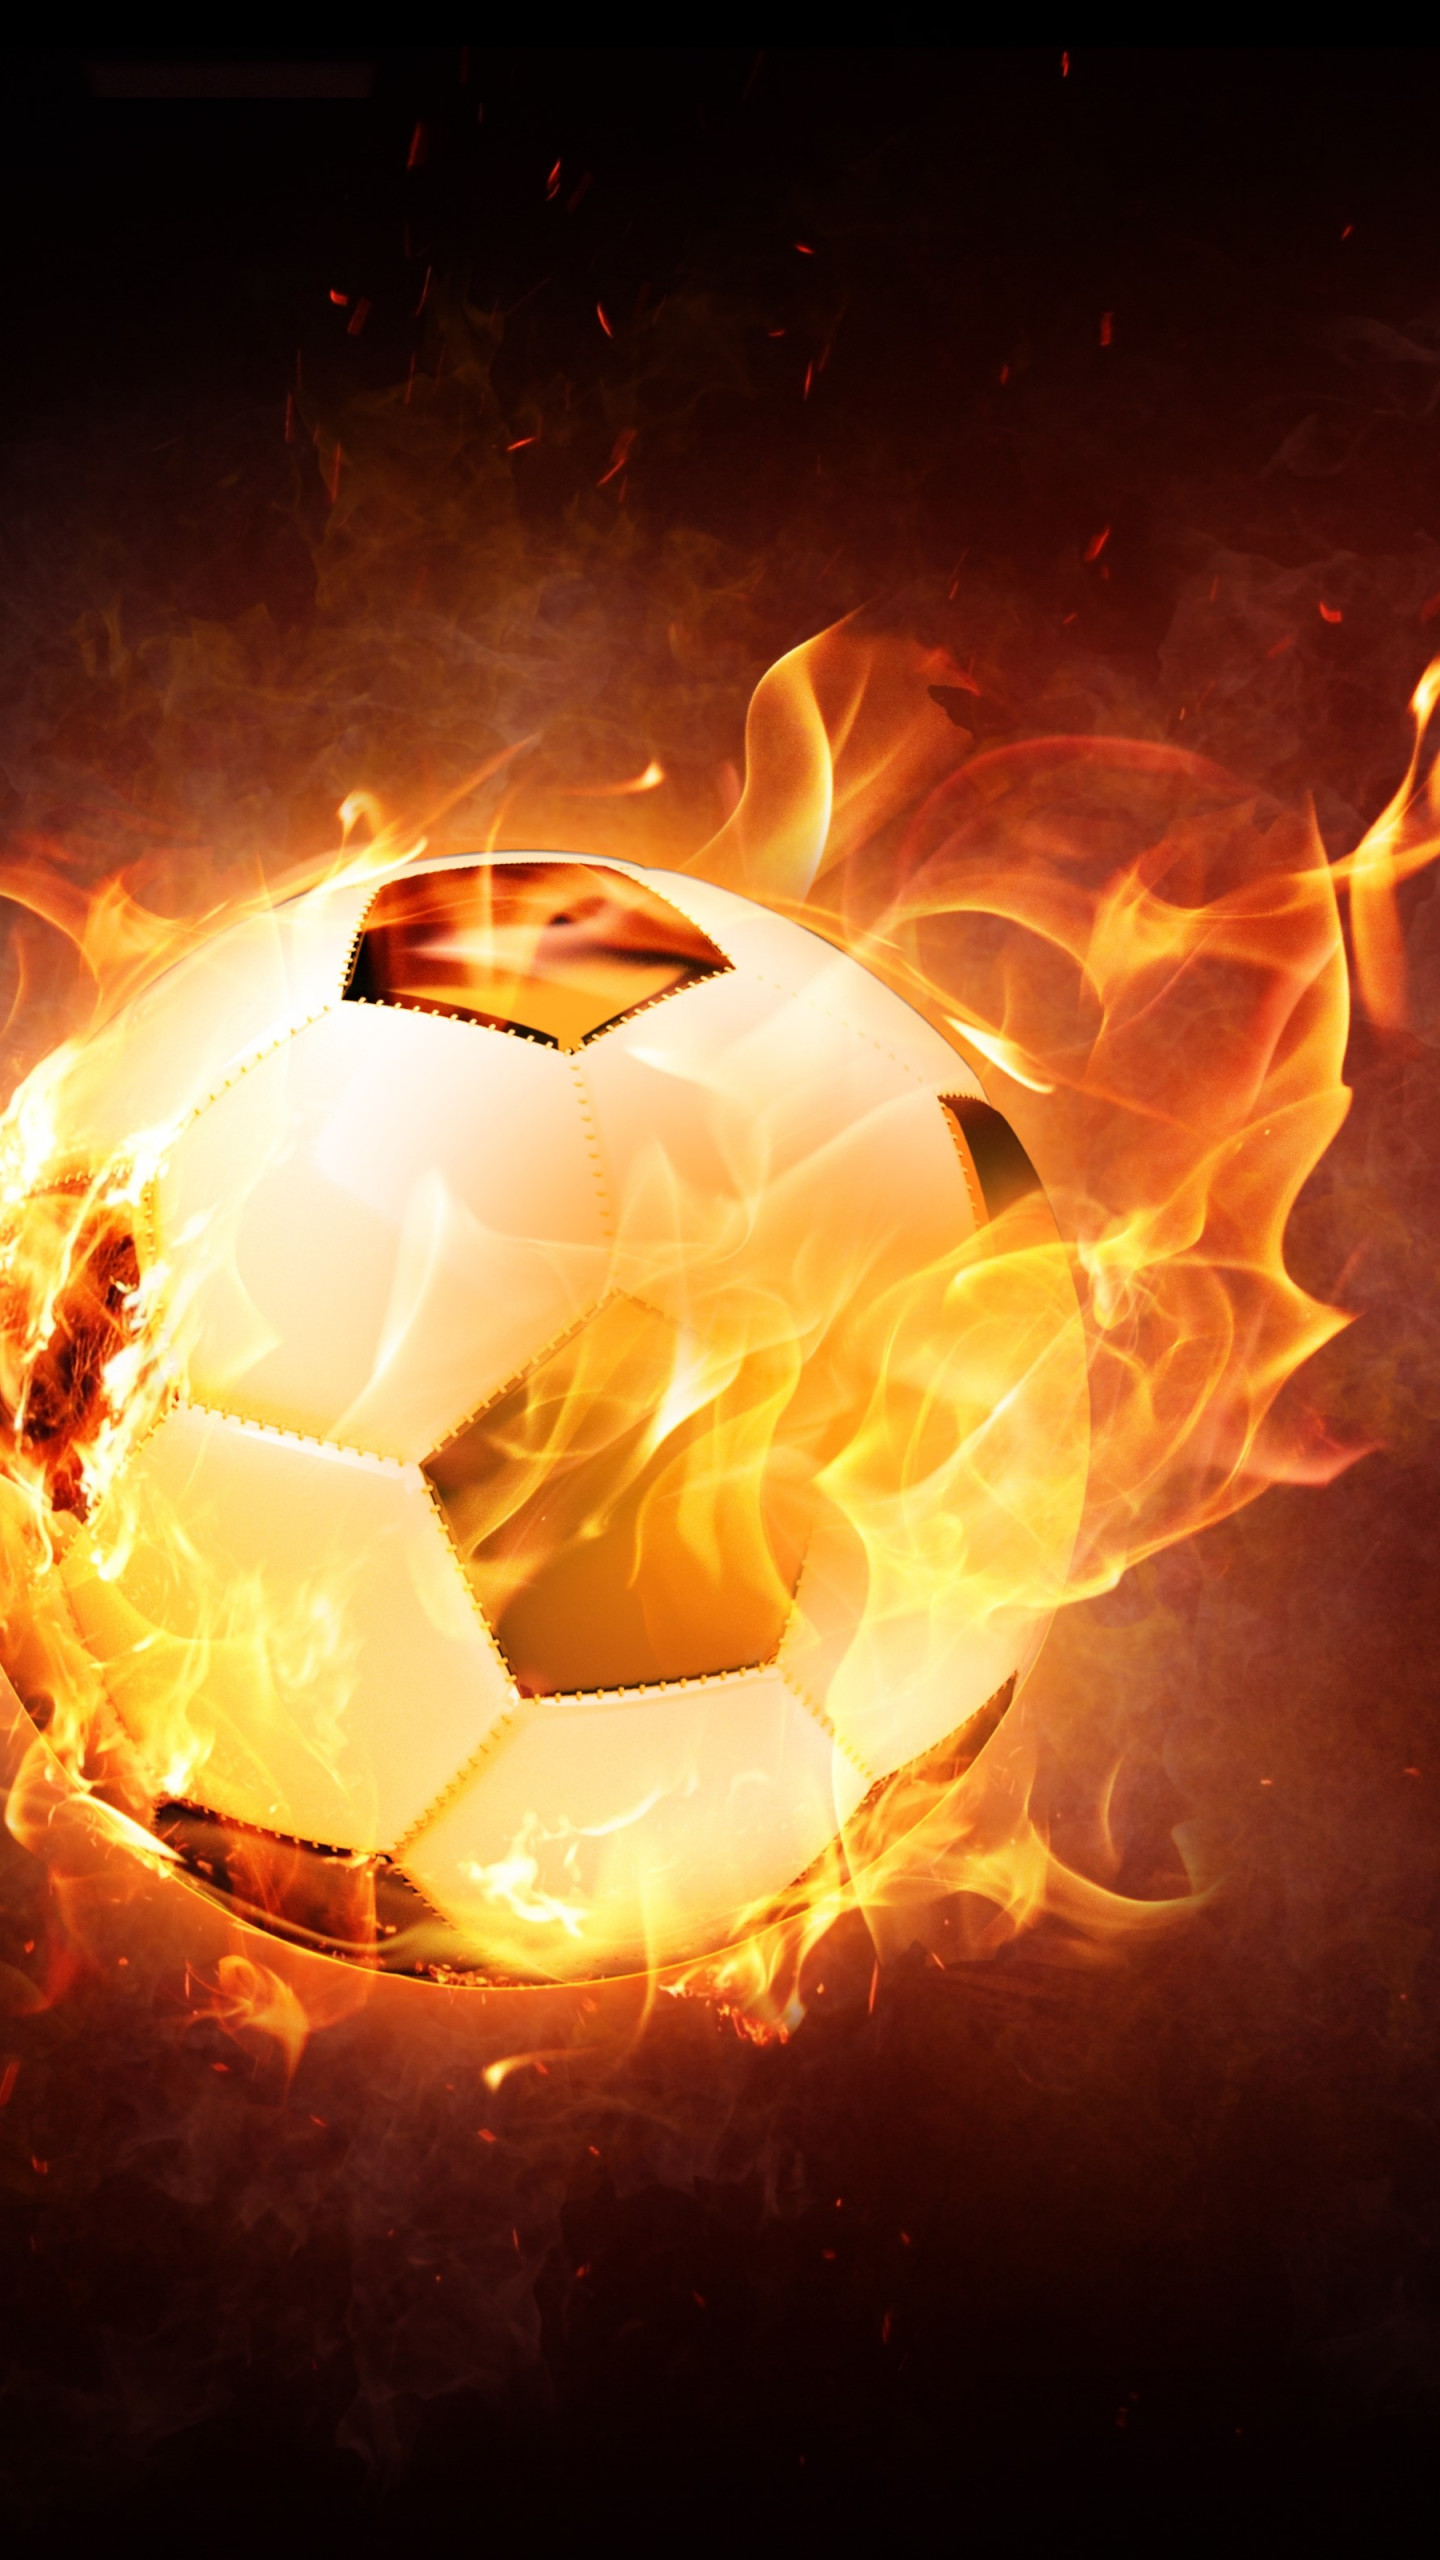 The football ball is on fire | 1440x2560 wallpaper